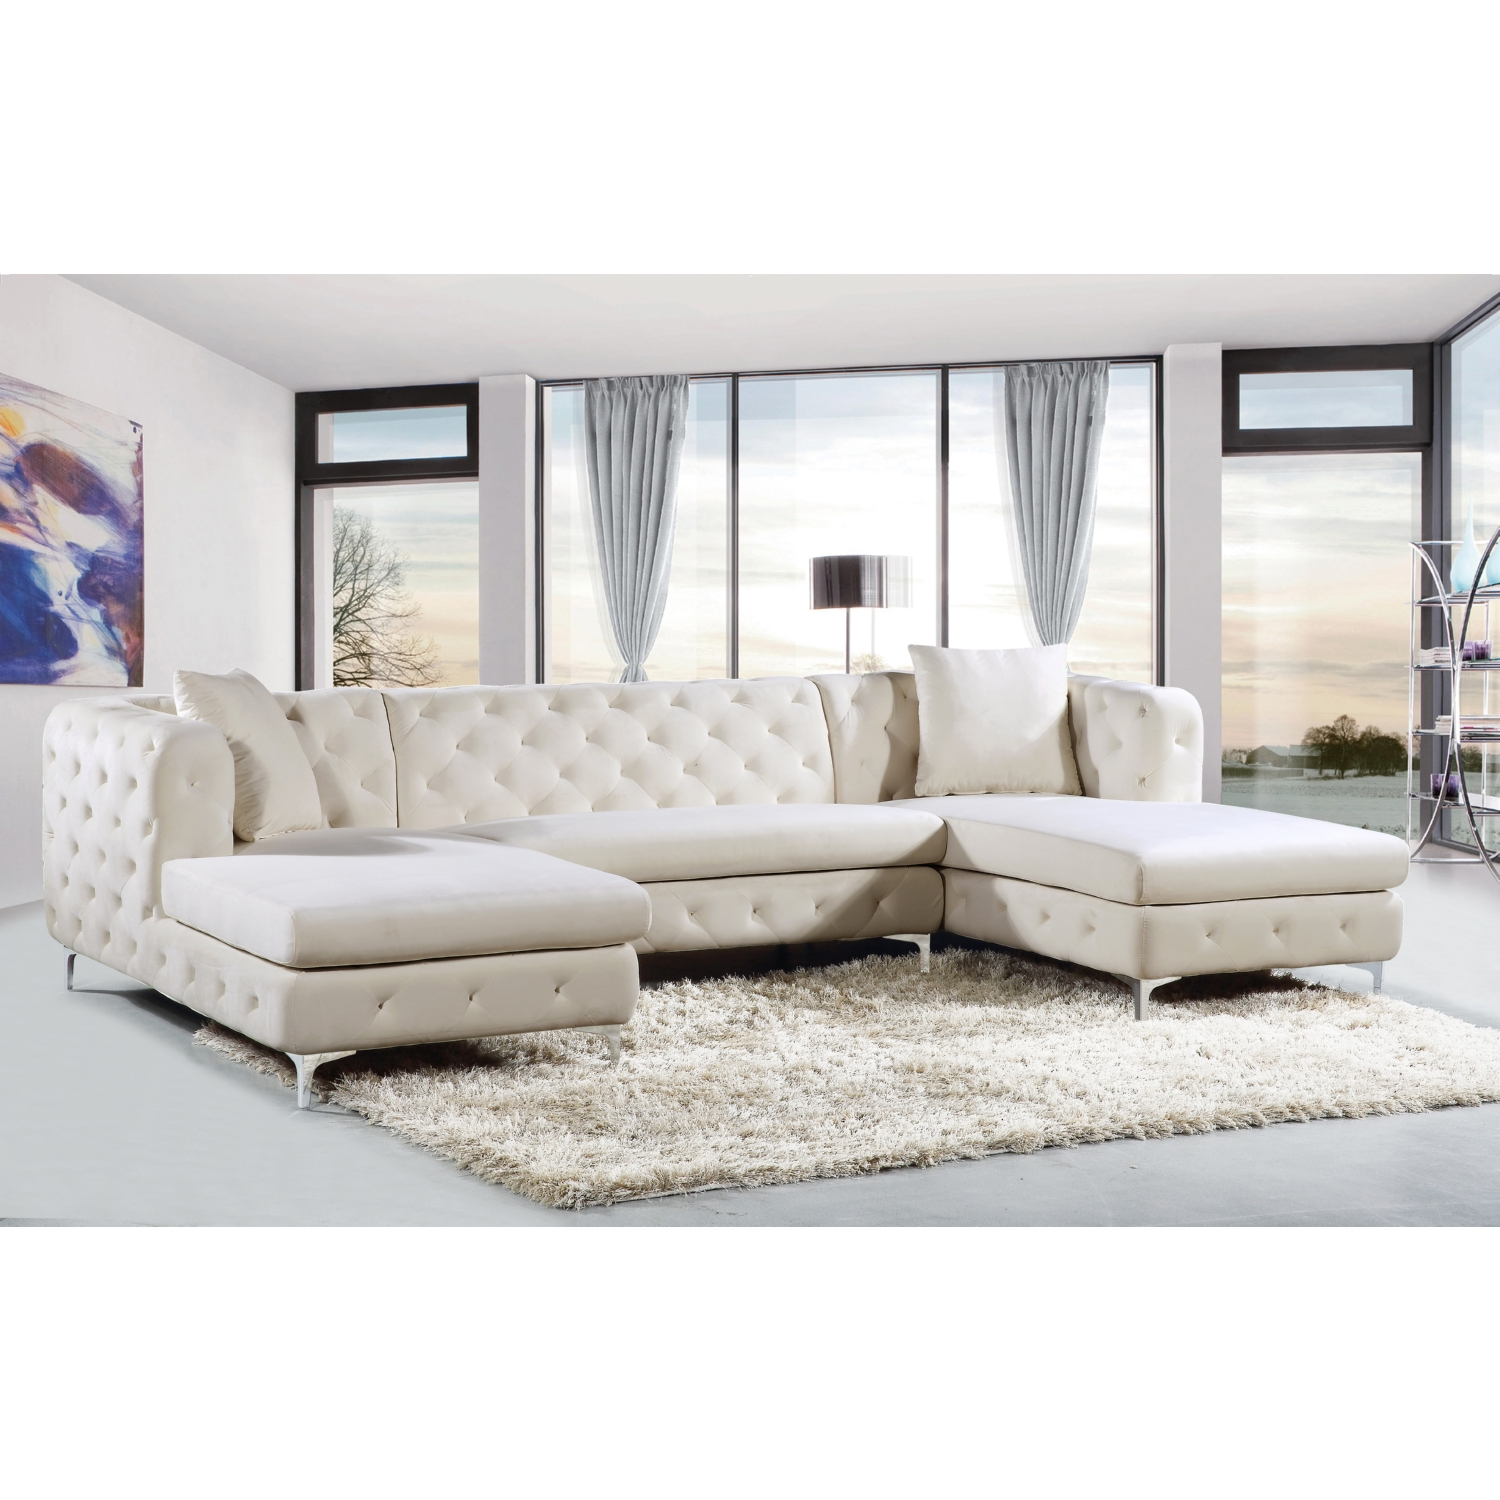 Meridian Furniture Gail 3 Piece Double Chaise Sectional in Tufted Cream  Velvet